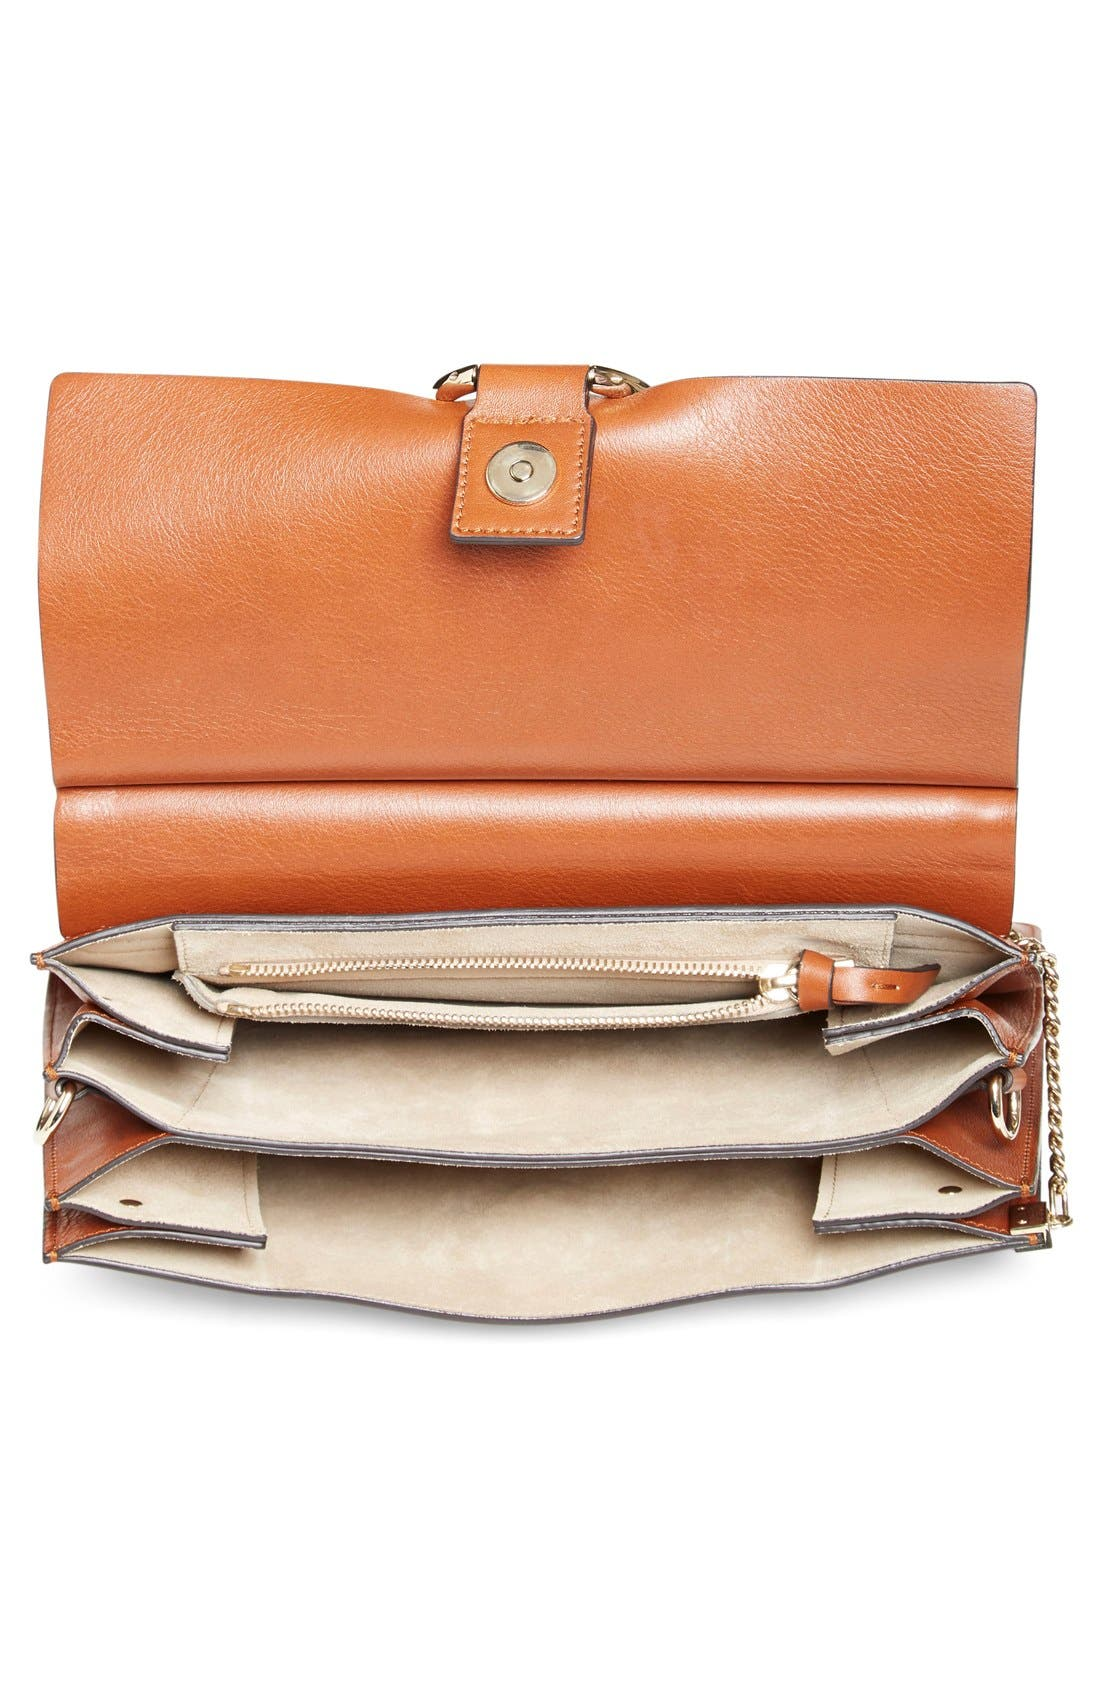 'Faye' Leather & Suede Shoulder Bag,                             Alternate thumbnail 3, color,                             Classic Tobacco